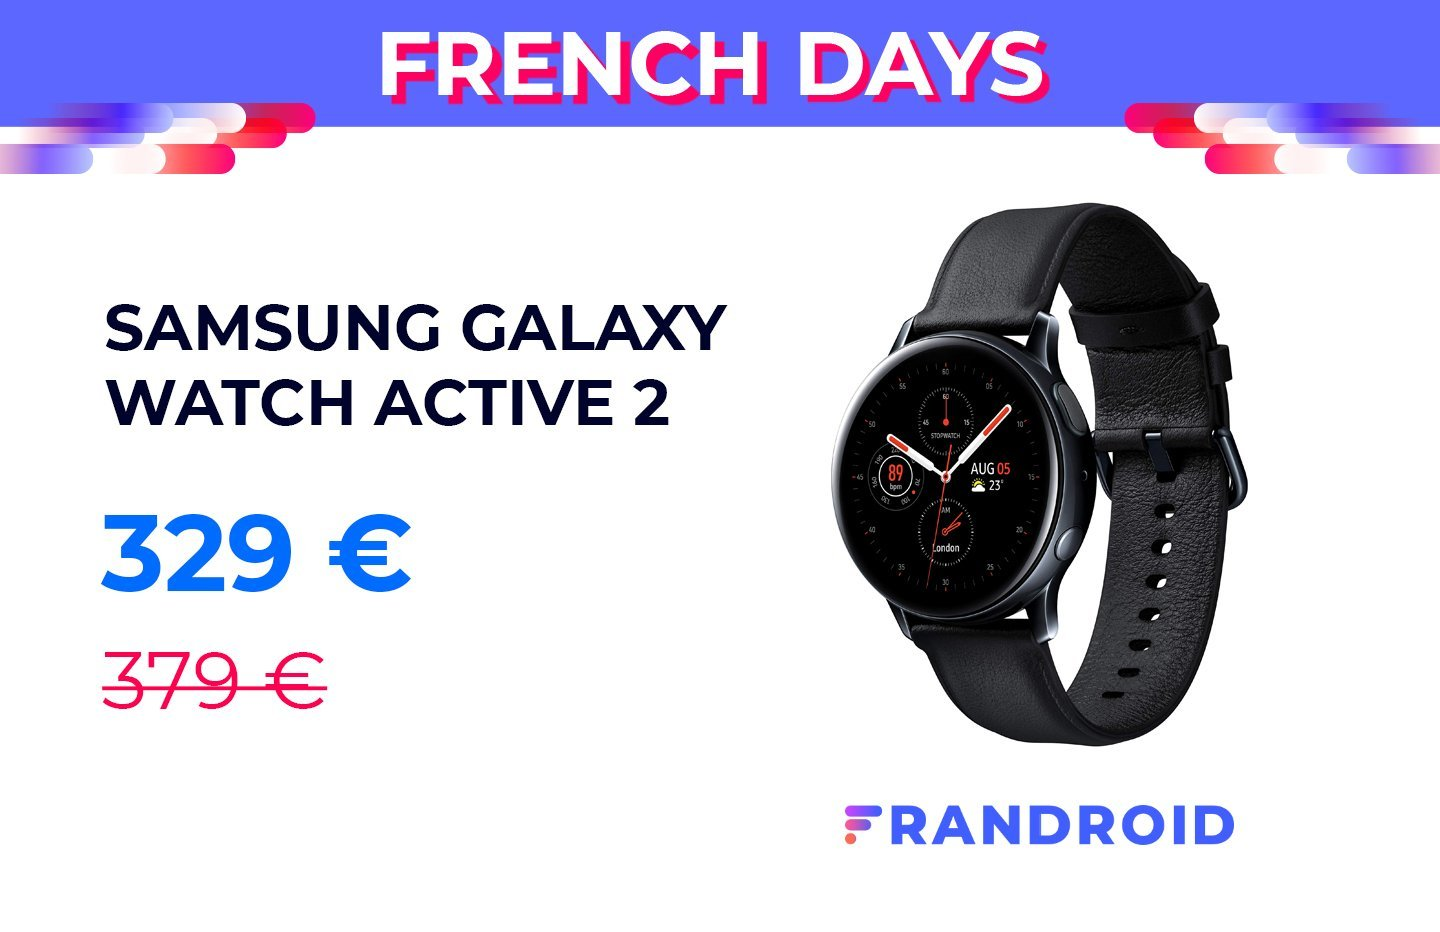 L'élégante Samsung Galaxy Watch 2 Active profite de 50 euros de réduction